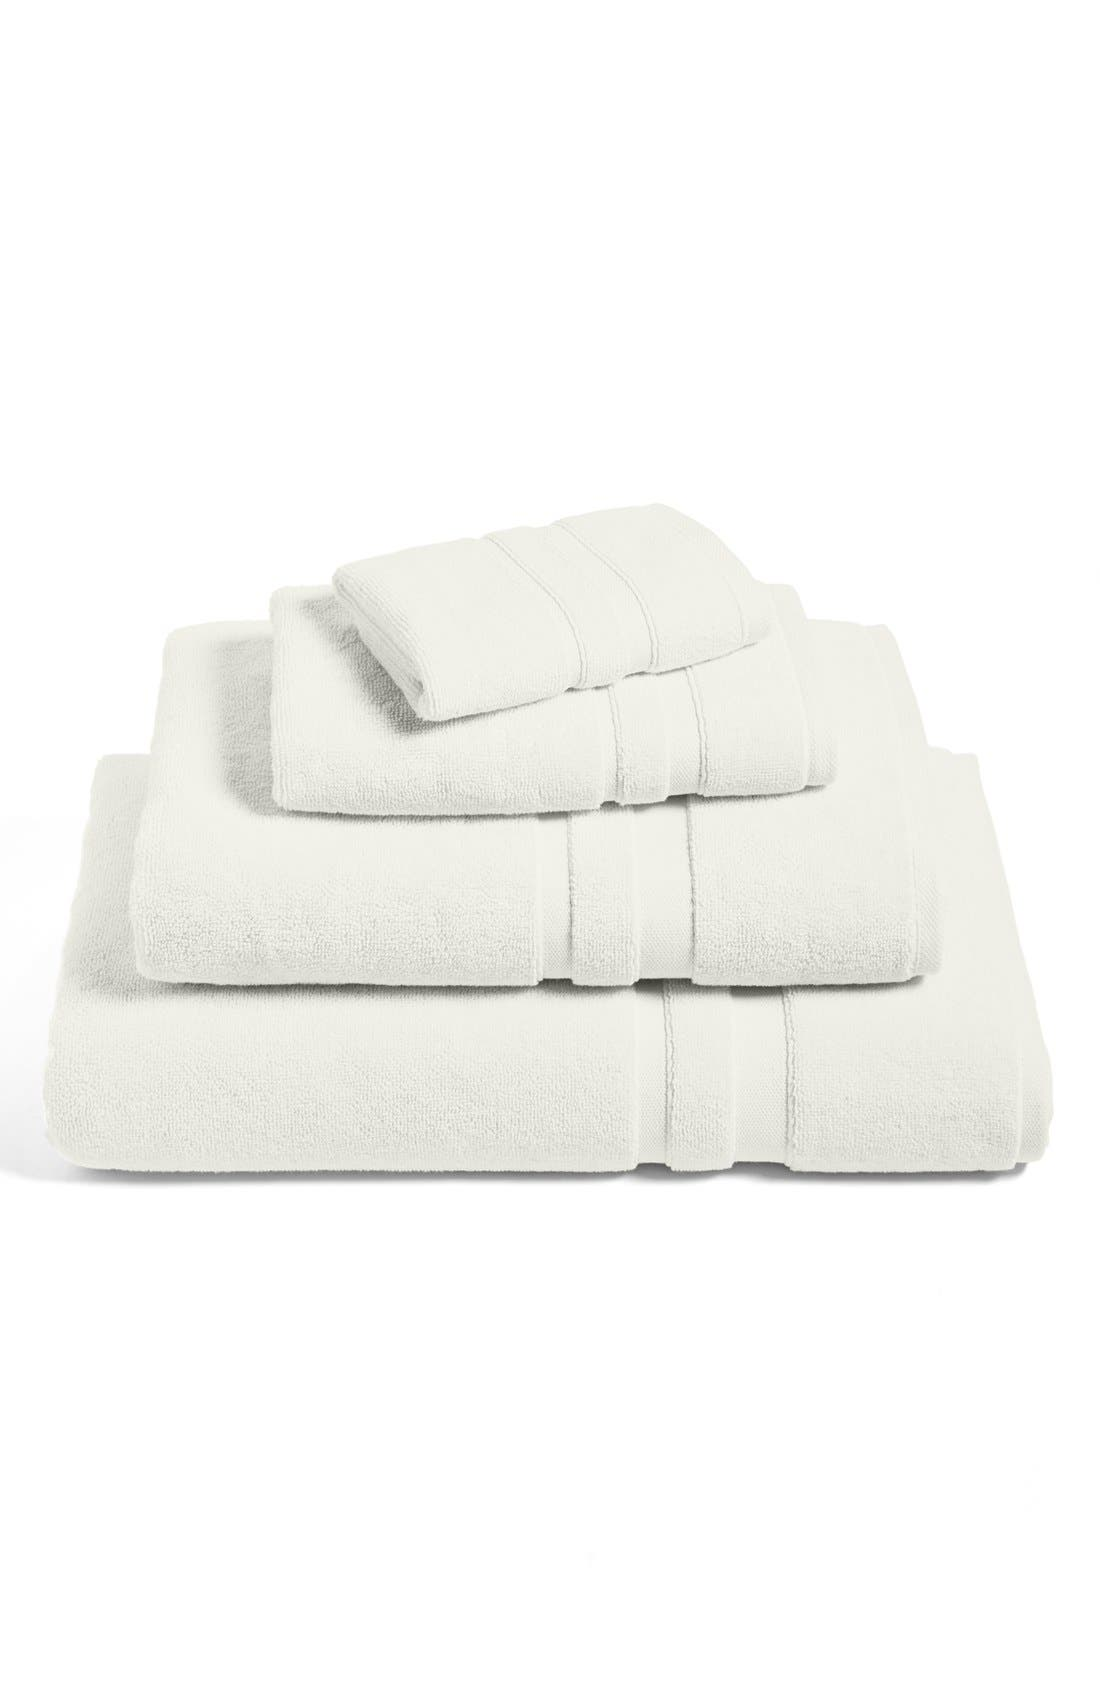 Waterworks Studio 'Perennial' Turkish Cotton Towel Collection